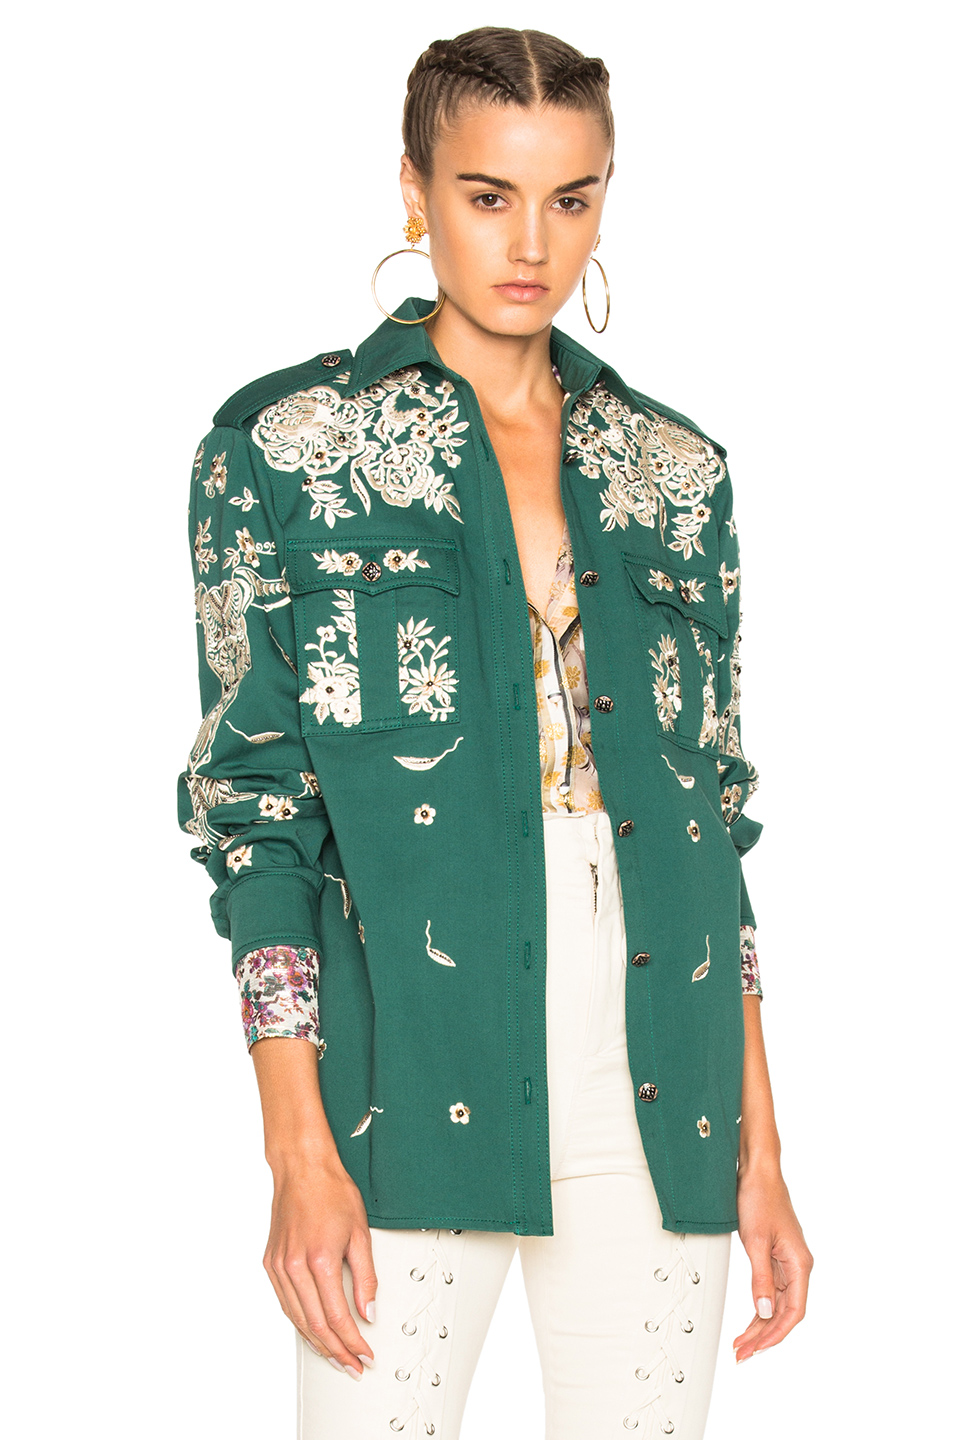 Roberto Cavalli Embroidered Jacket in Green,Floral